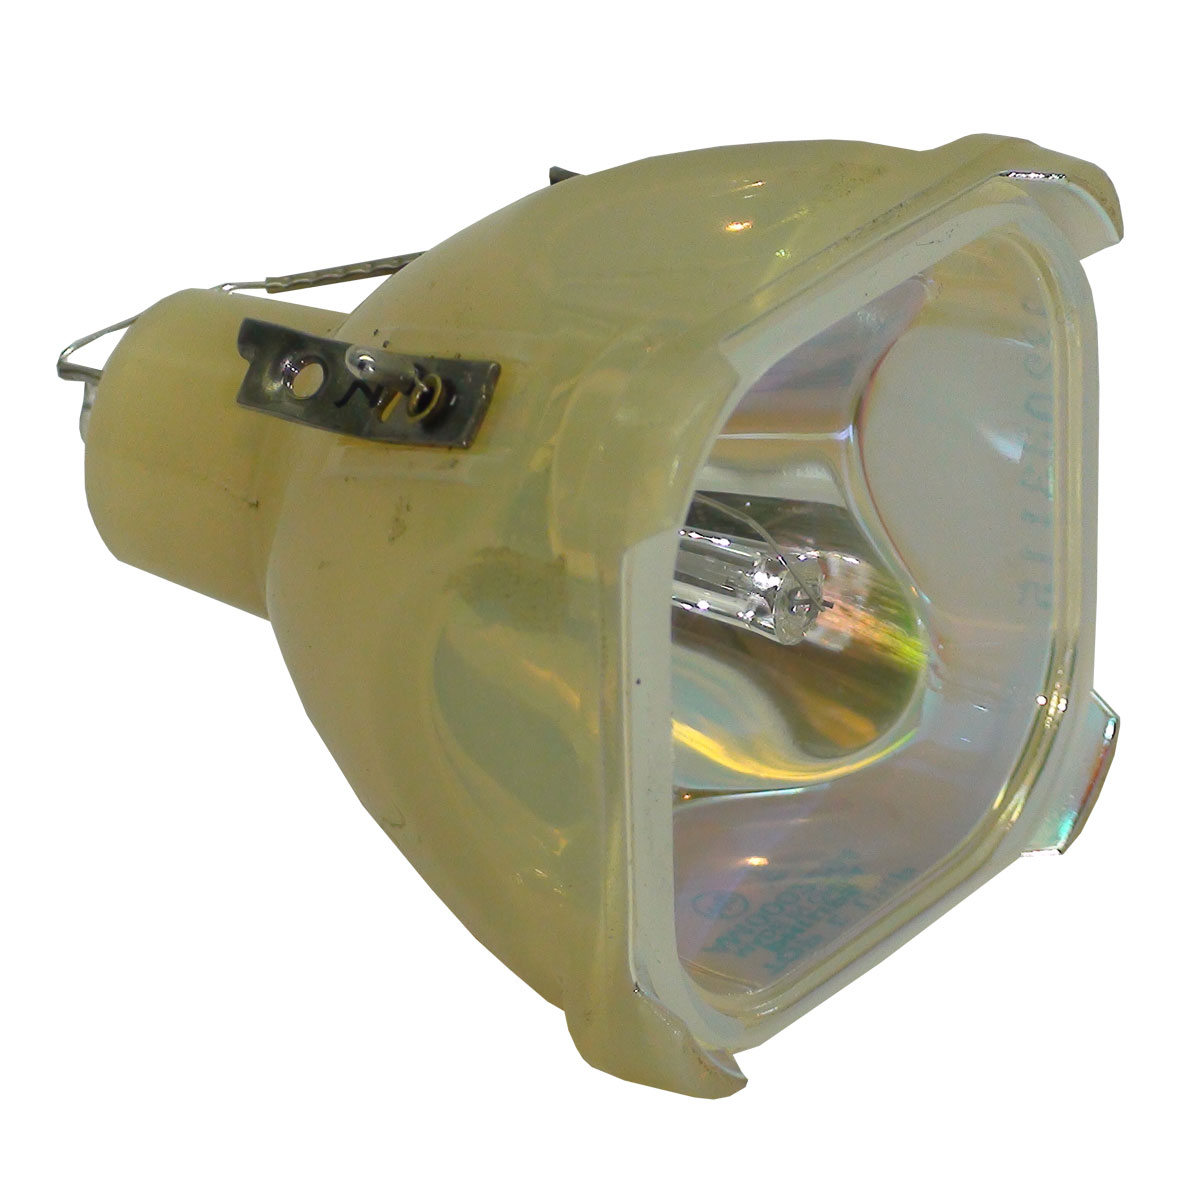 Original Philips Projector Lamp Replacement for Sony VPL-CX10 (Bulb Only) - image 4 de 5